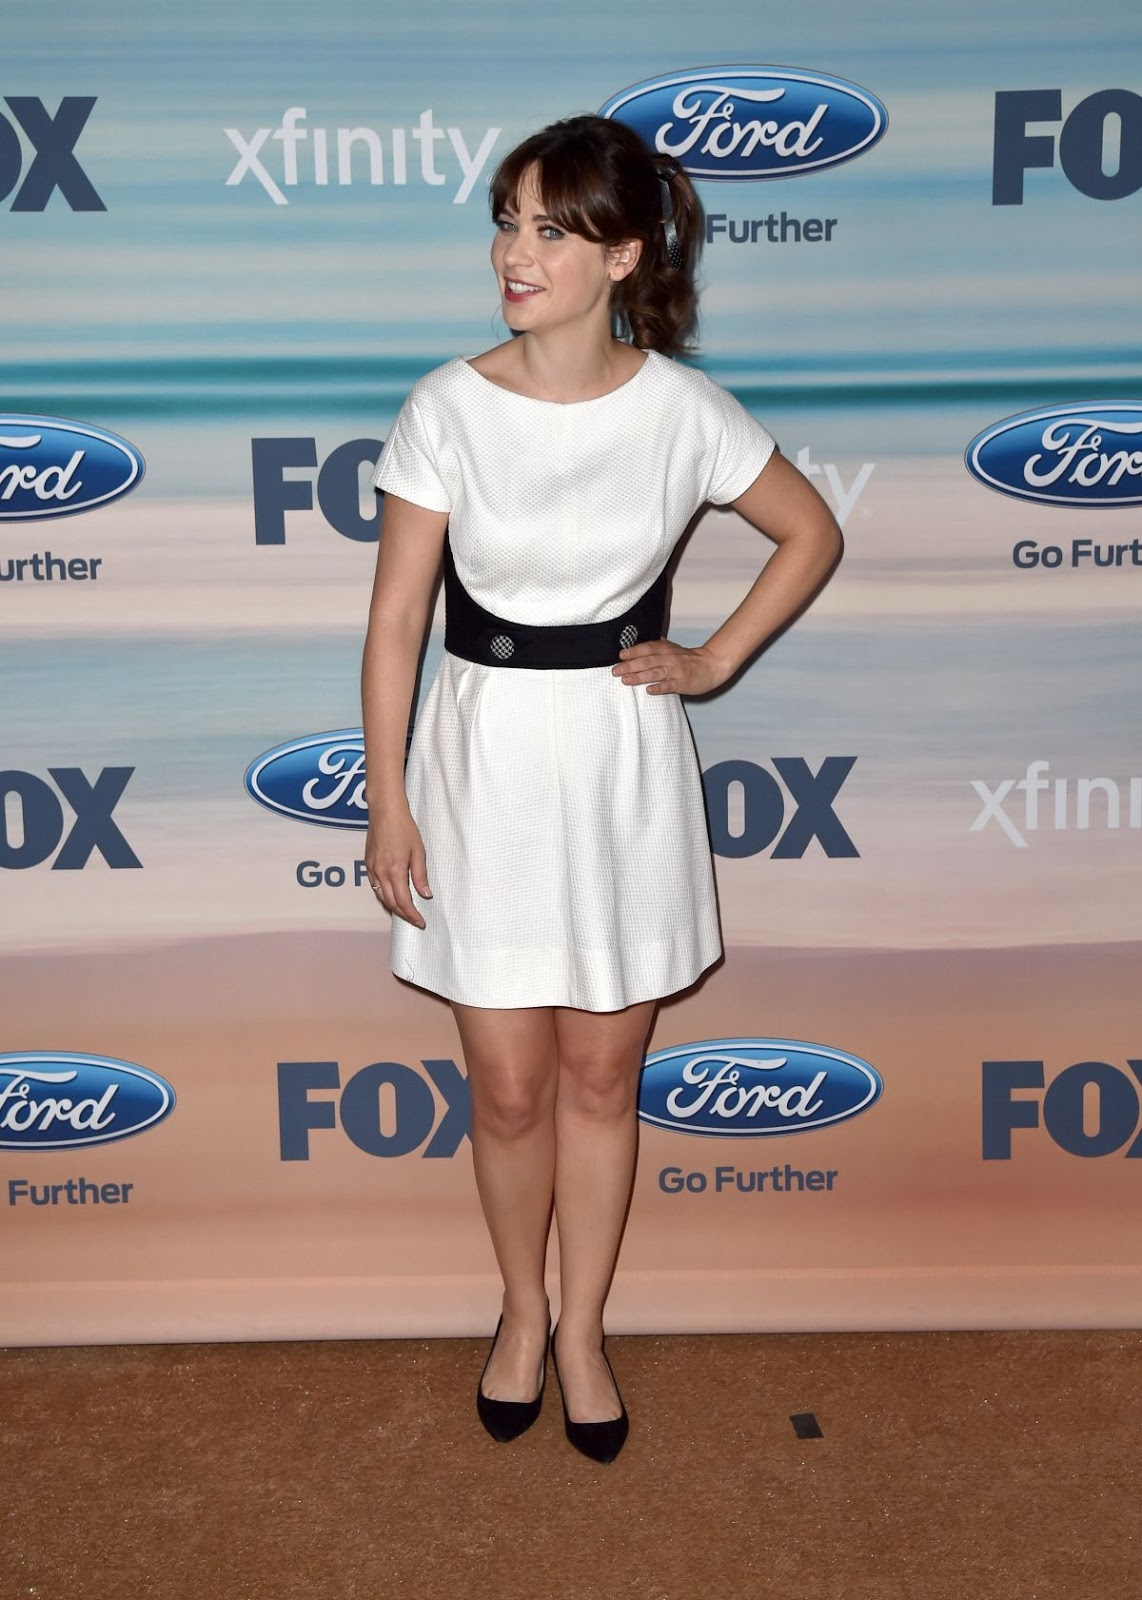 Full HQ Photos of Zooey Deschanel at Fox Fall ECO Casino 2014 Party in Santa Monica